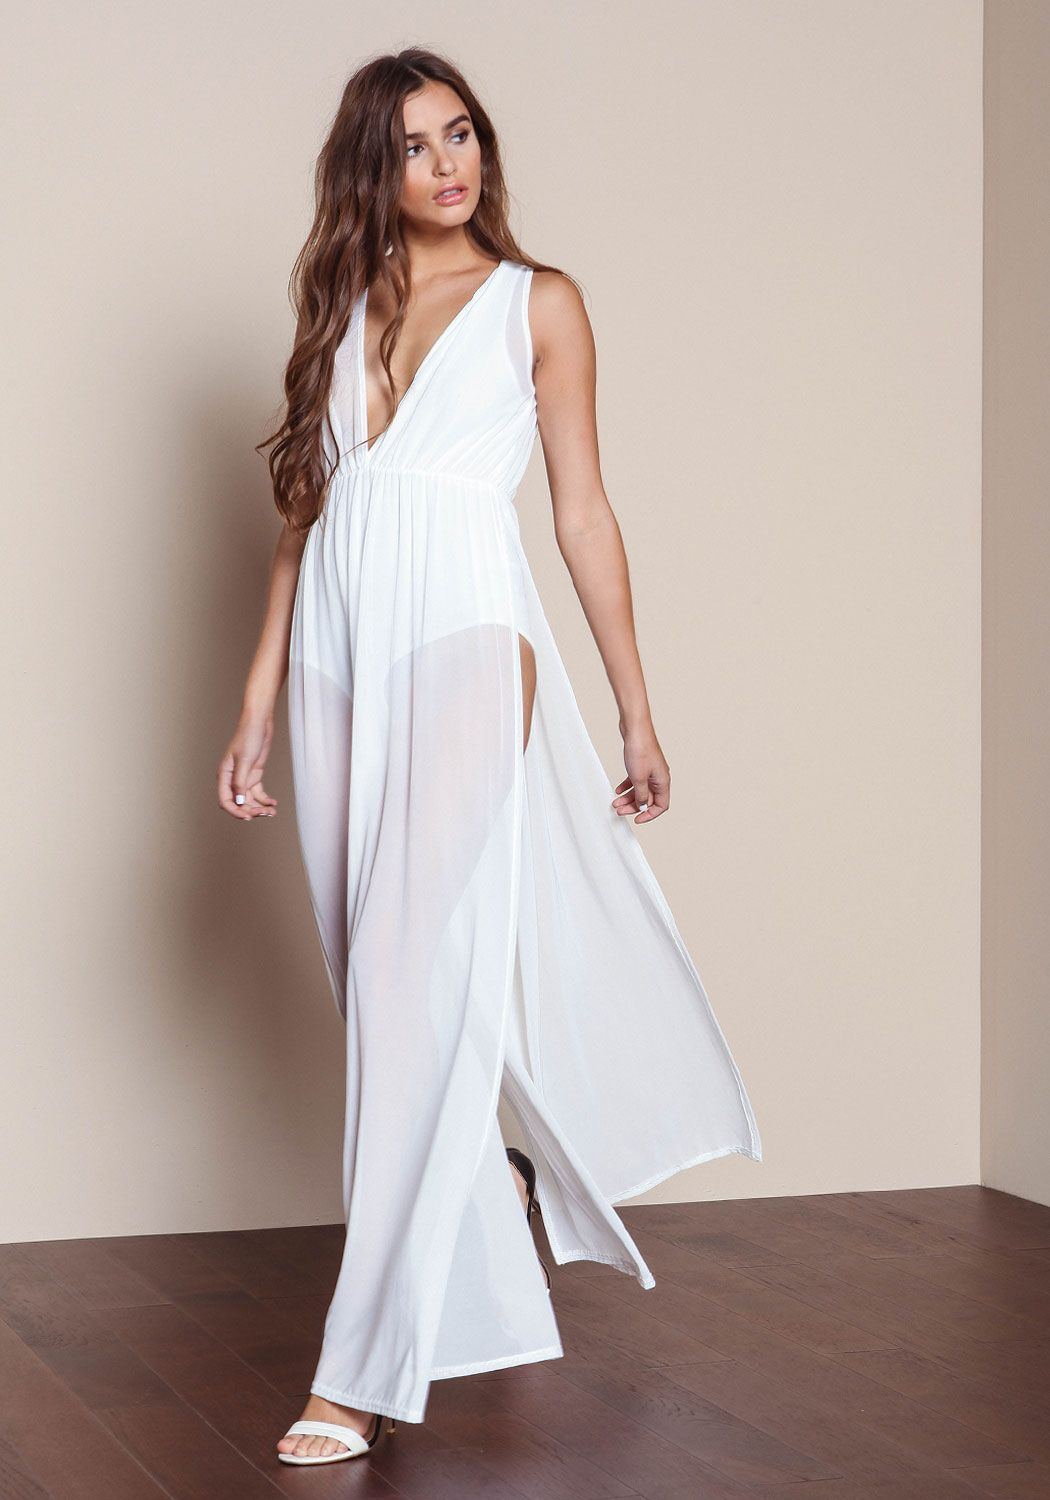 White Sleeveless Bodysuit Mesh Maxi Dress - Love Culture ... e96e2f84f